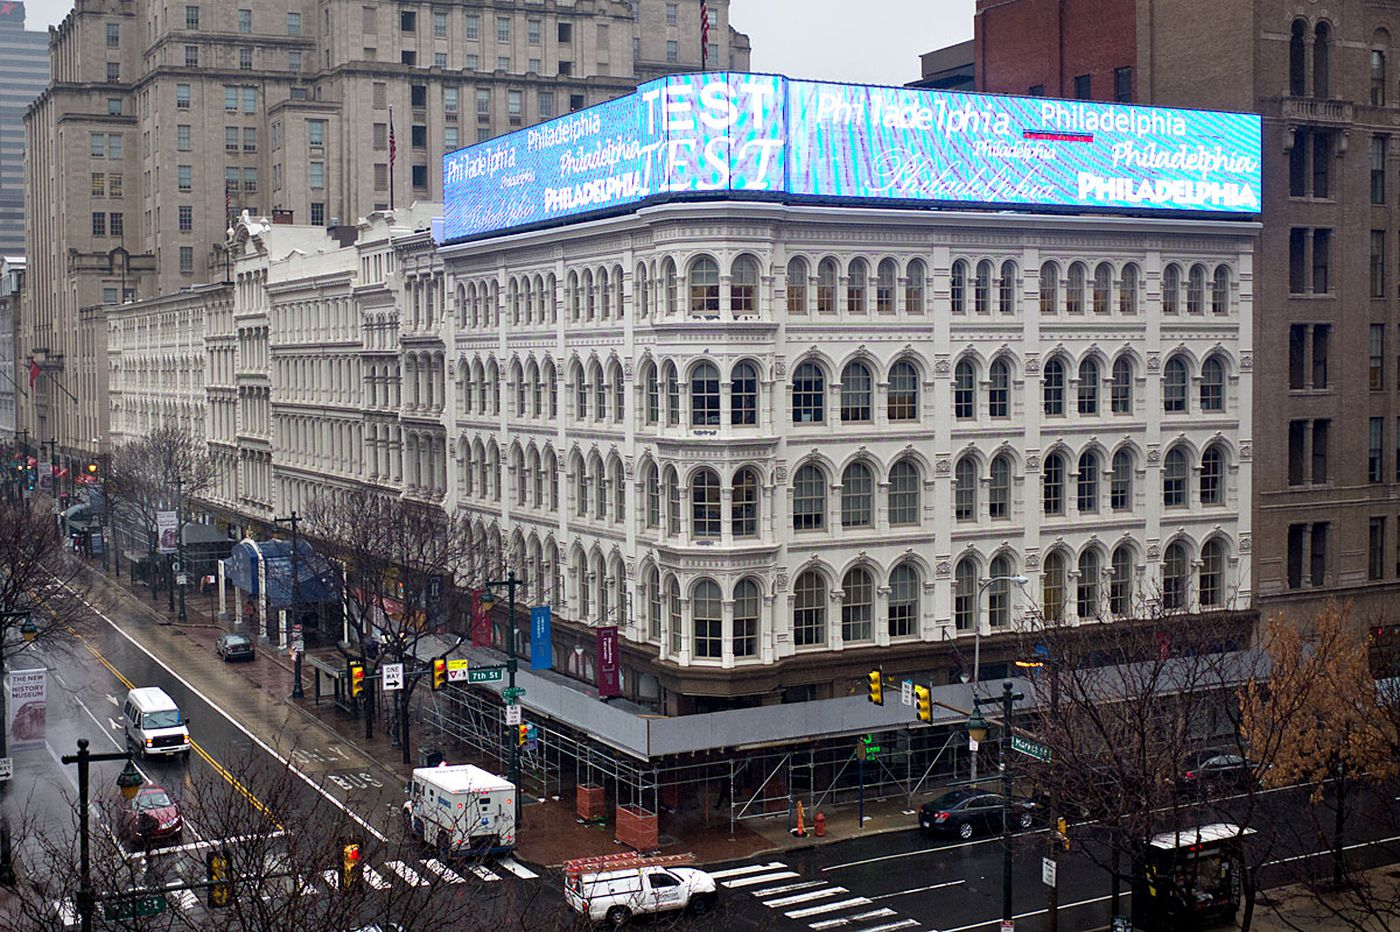 The Lits brand is back as BNY Mellon downsizes at Market St. site